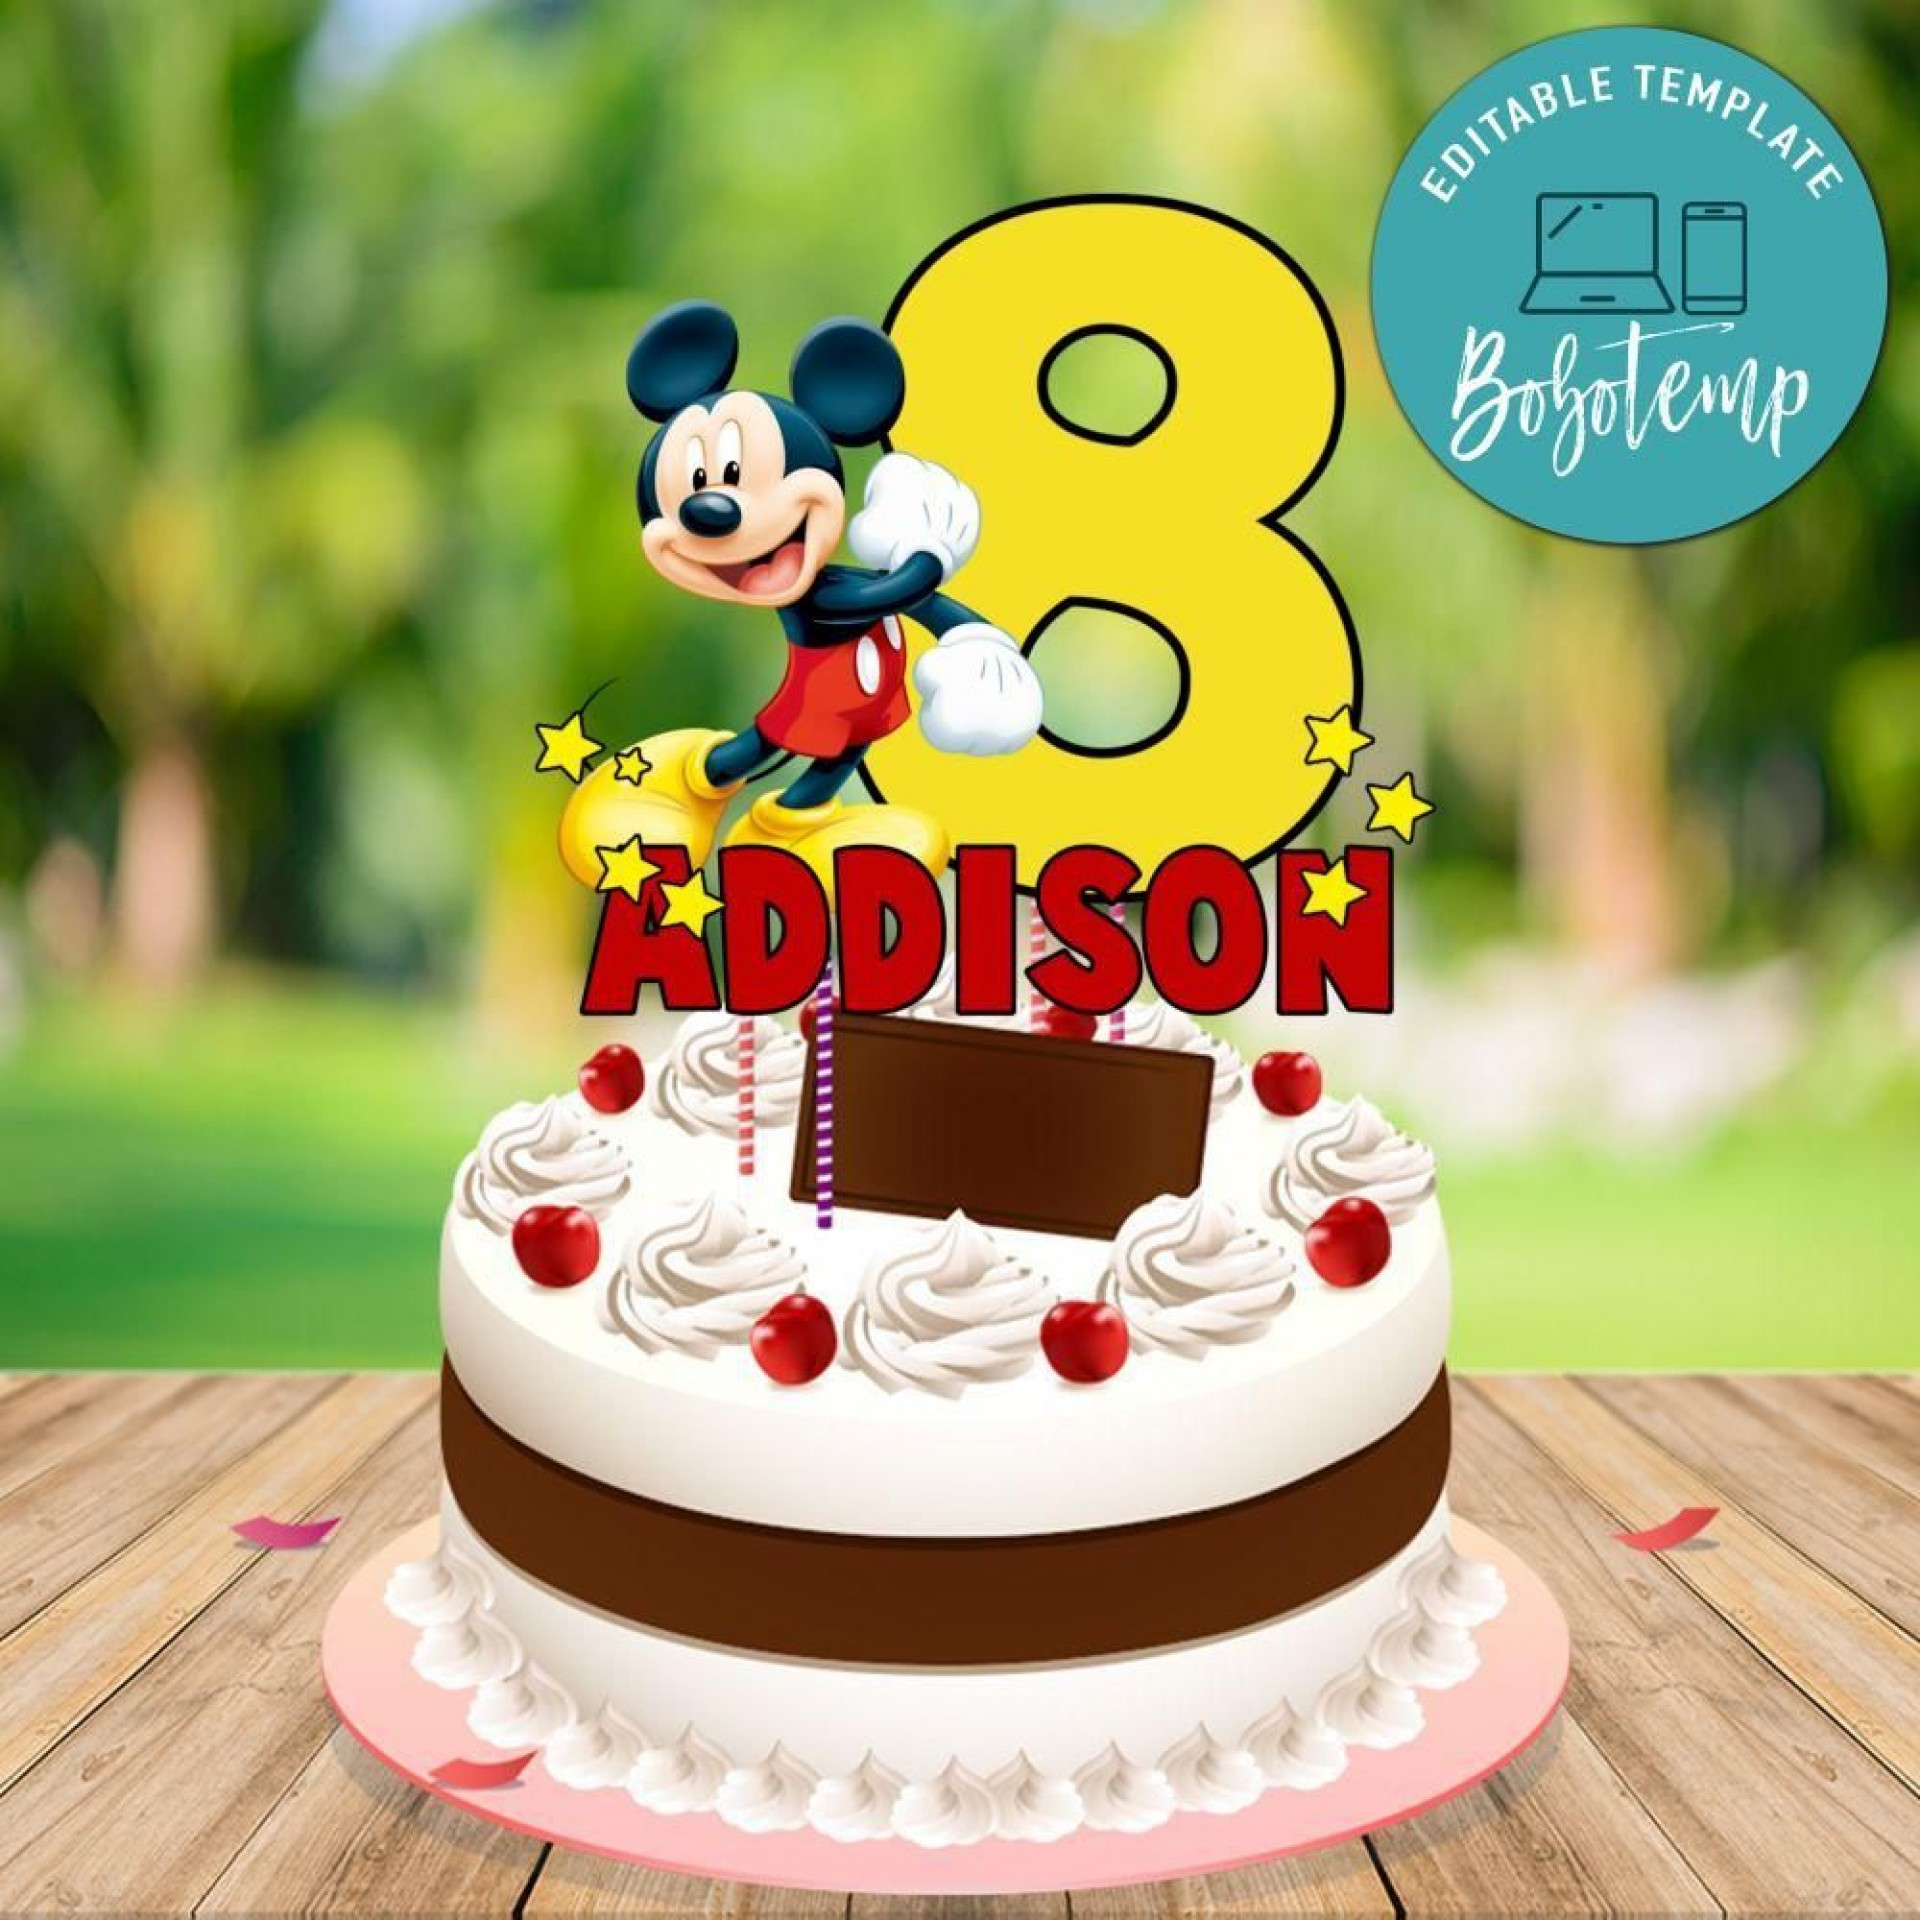 007 Top Mickey Mouse Face Cake Template Printable Inspiration 1920